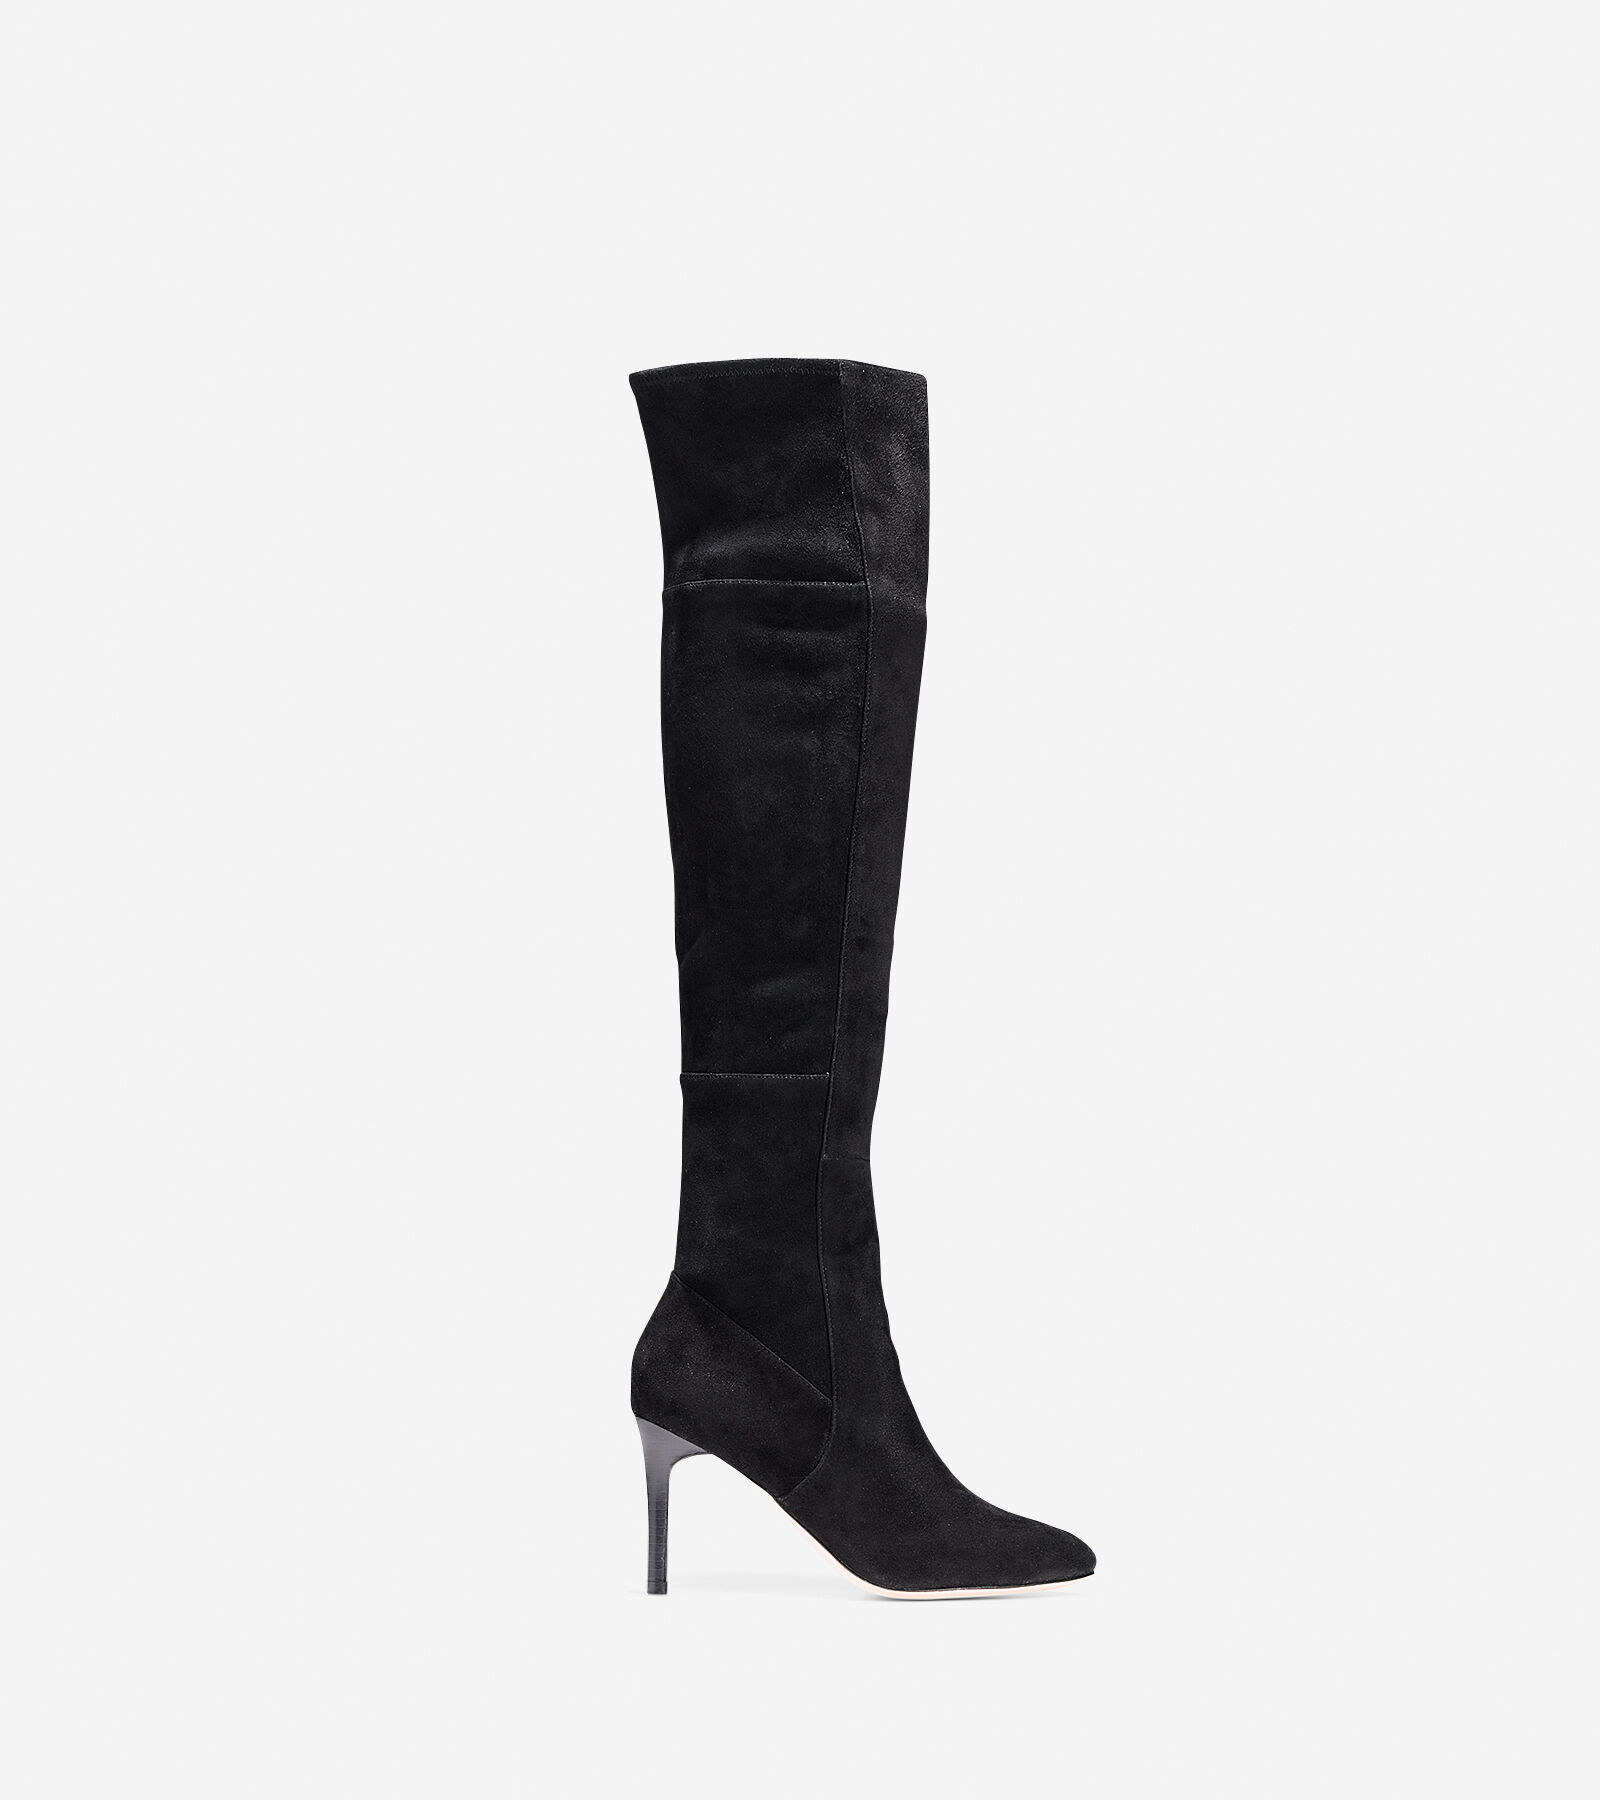 Suede Over The Knee High Heel Boots NlYPBSmg